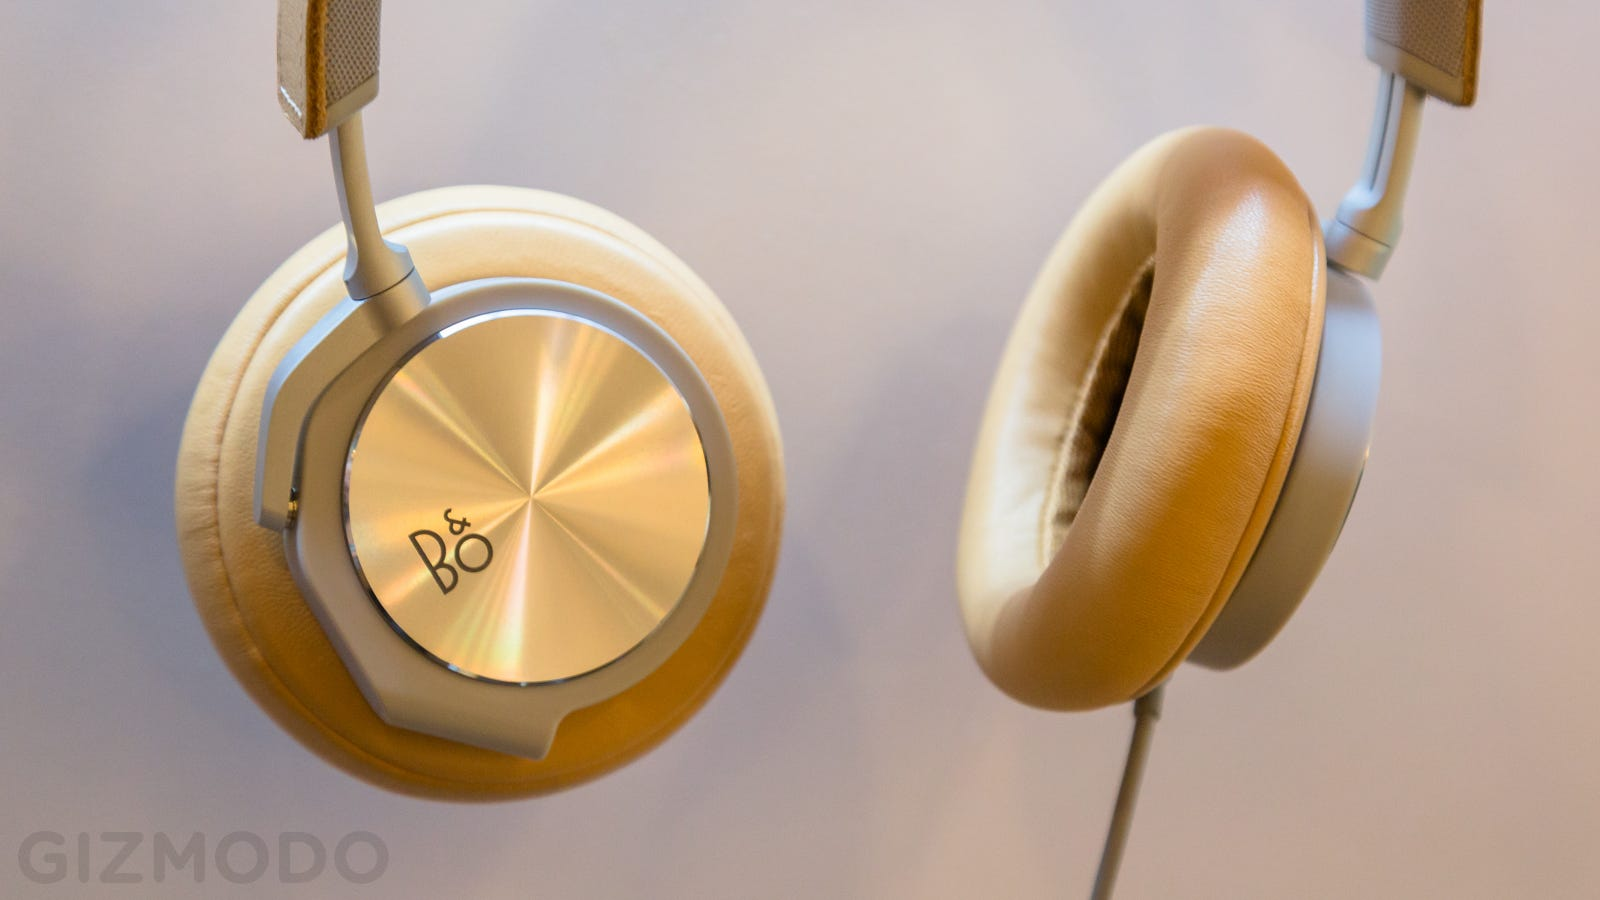 sennheiser headphone gaming headset - B&O H6 Headphones Are So Beautiful and Fancy They'll Fool Your Brain